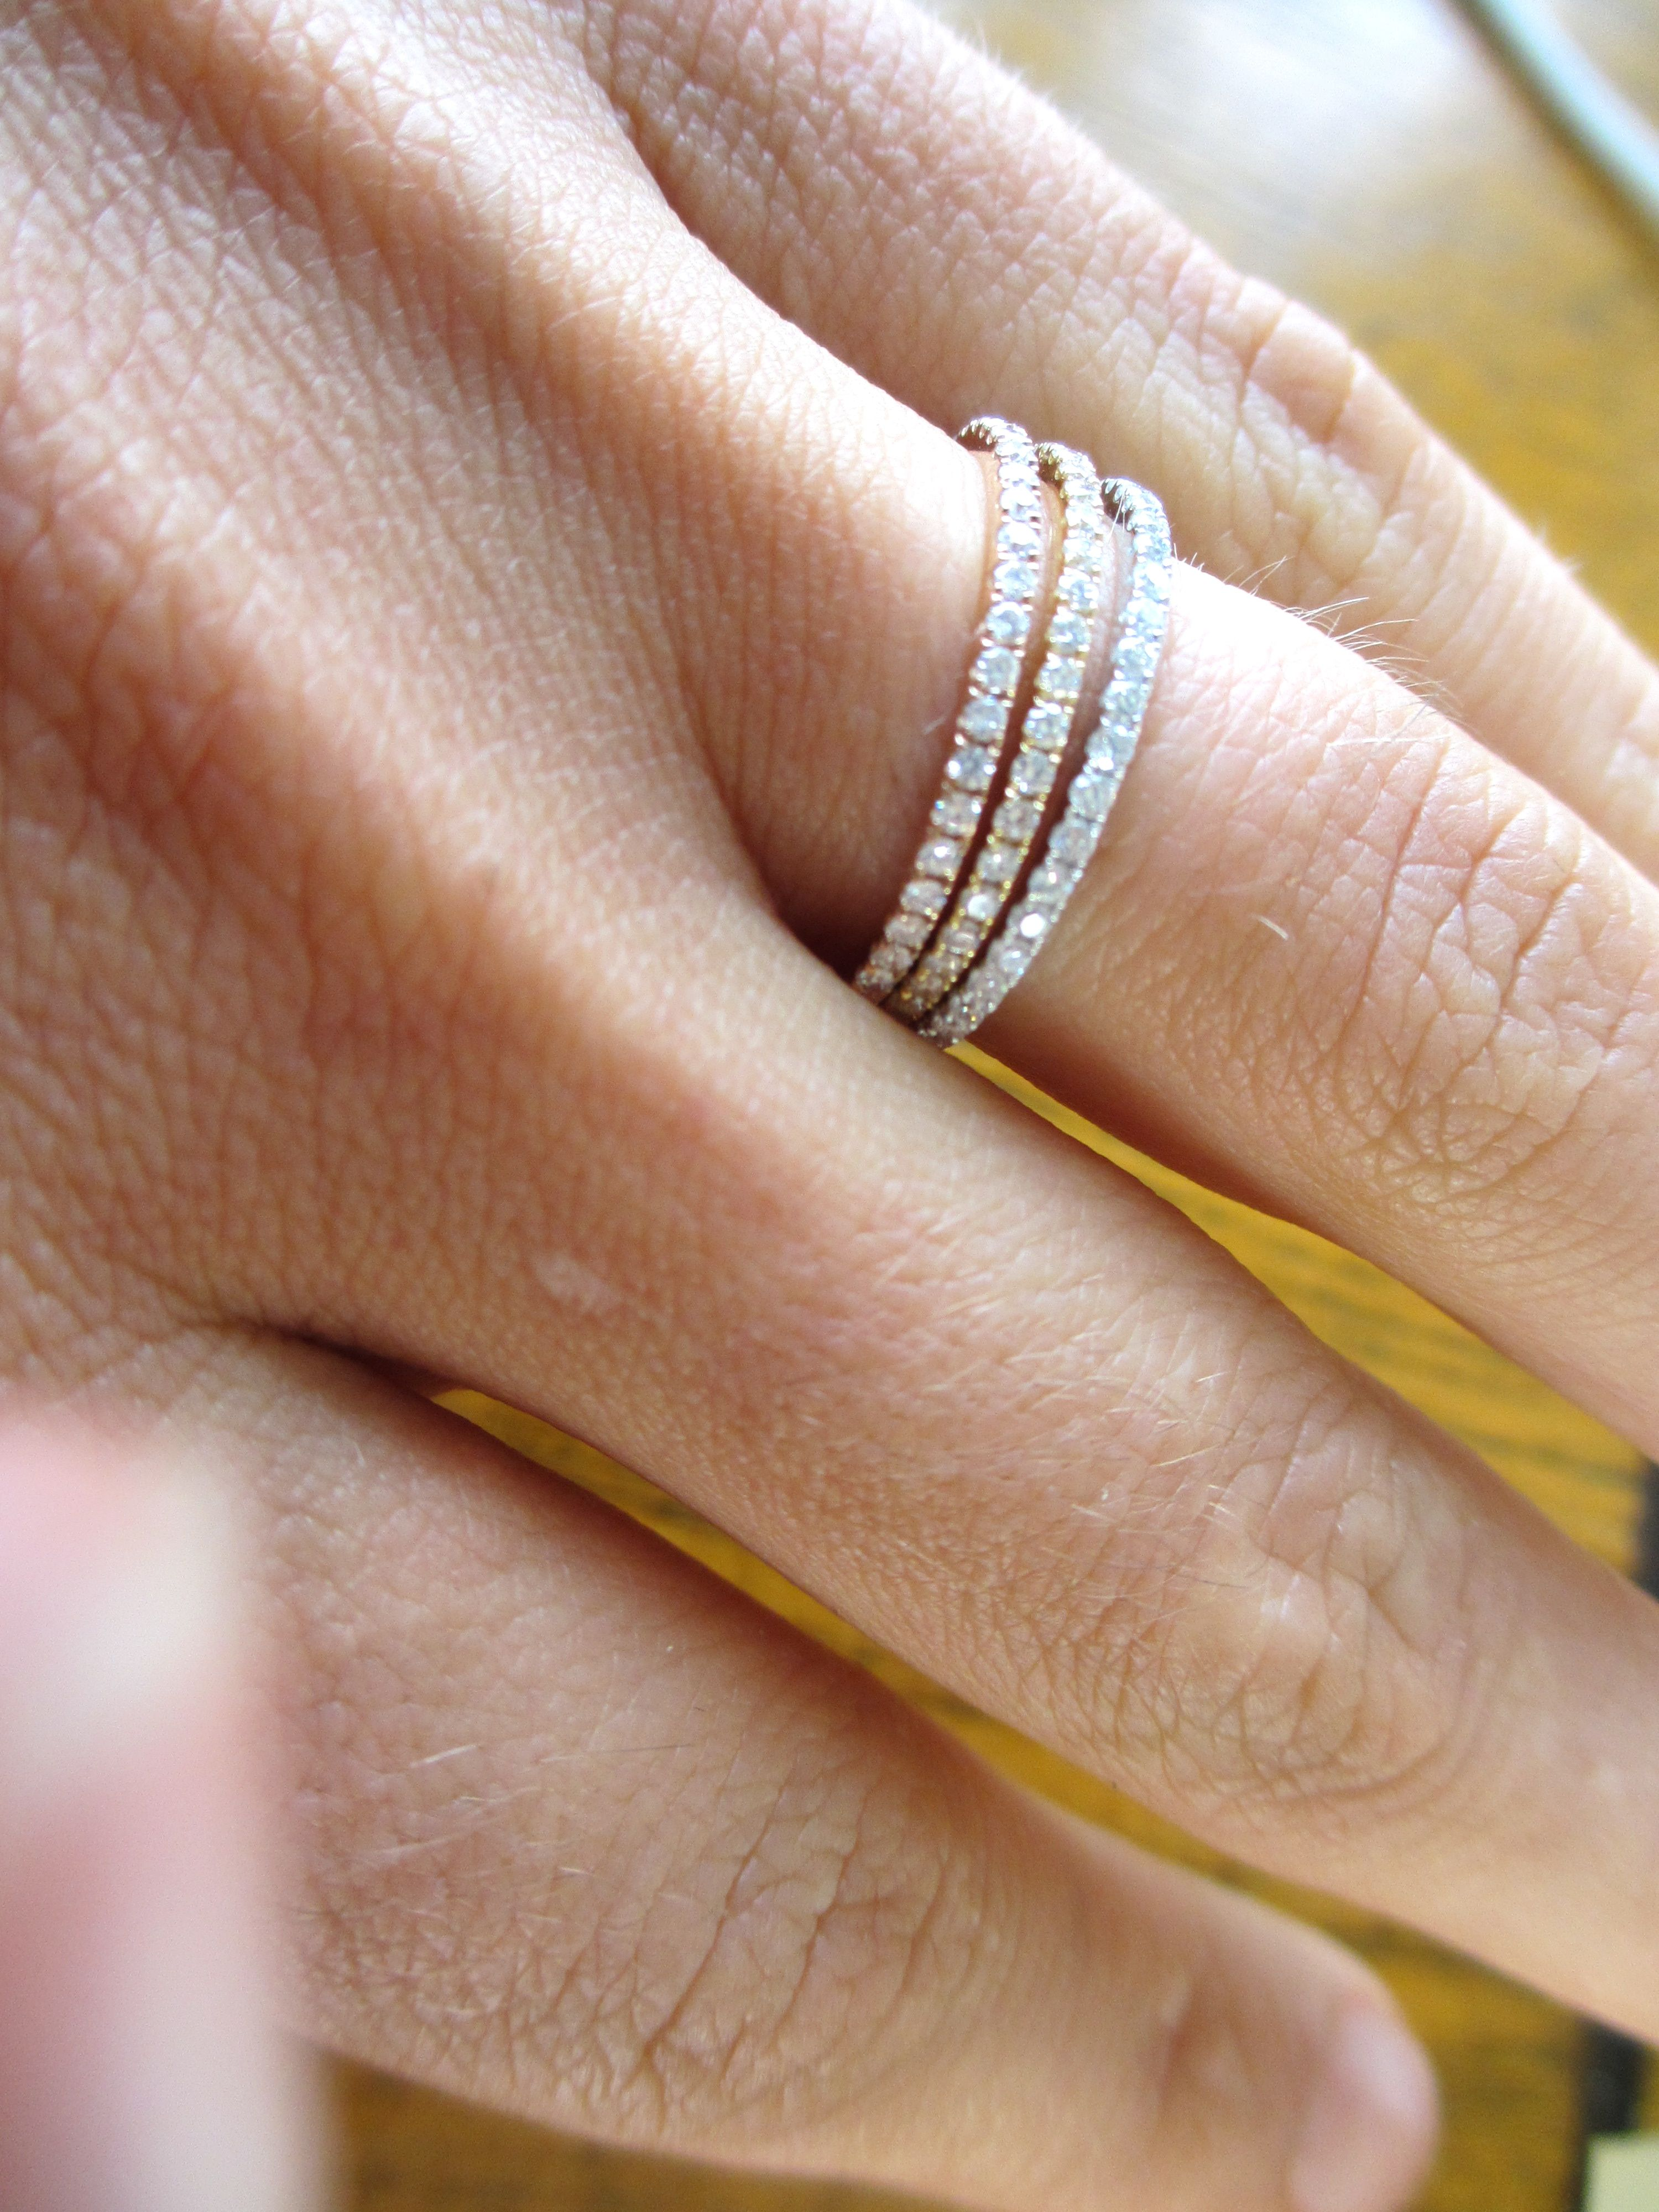 Pin By Nicole Stein On Wedding Bands Eternity Band Diamond Thin Diamond Band Stackable Diamond Rings